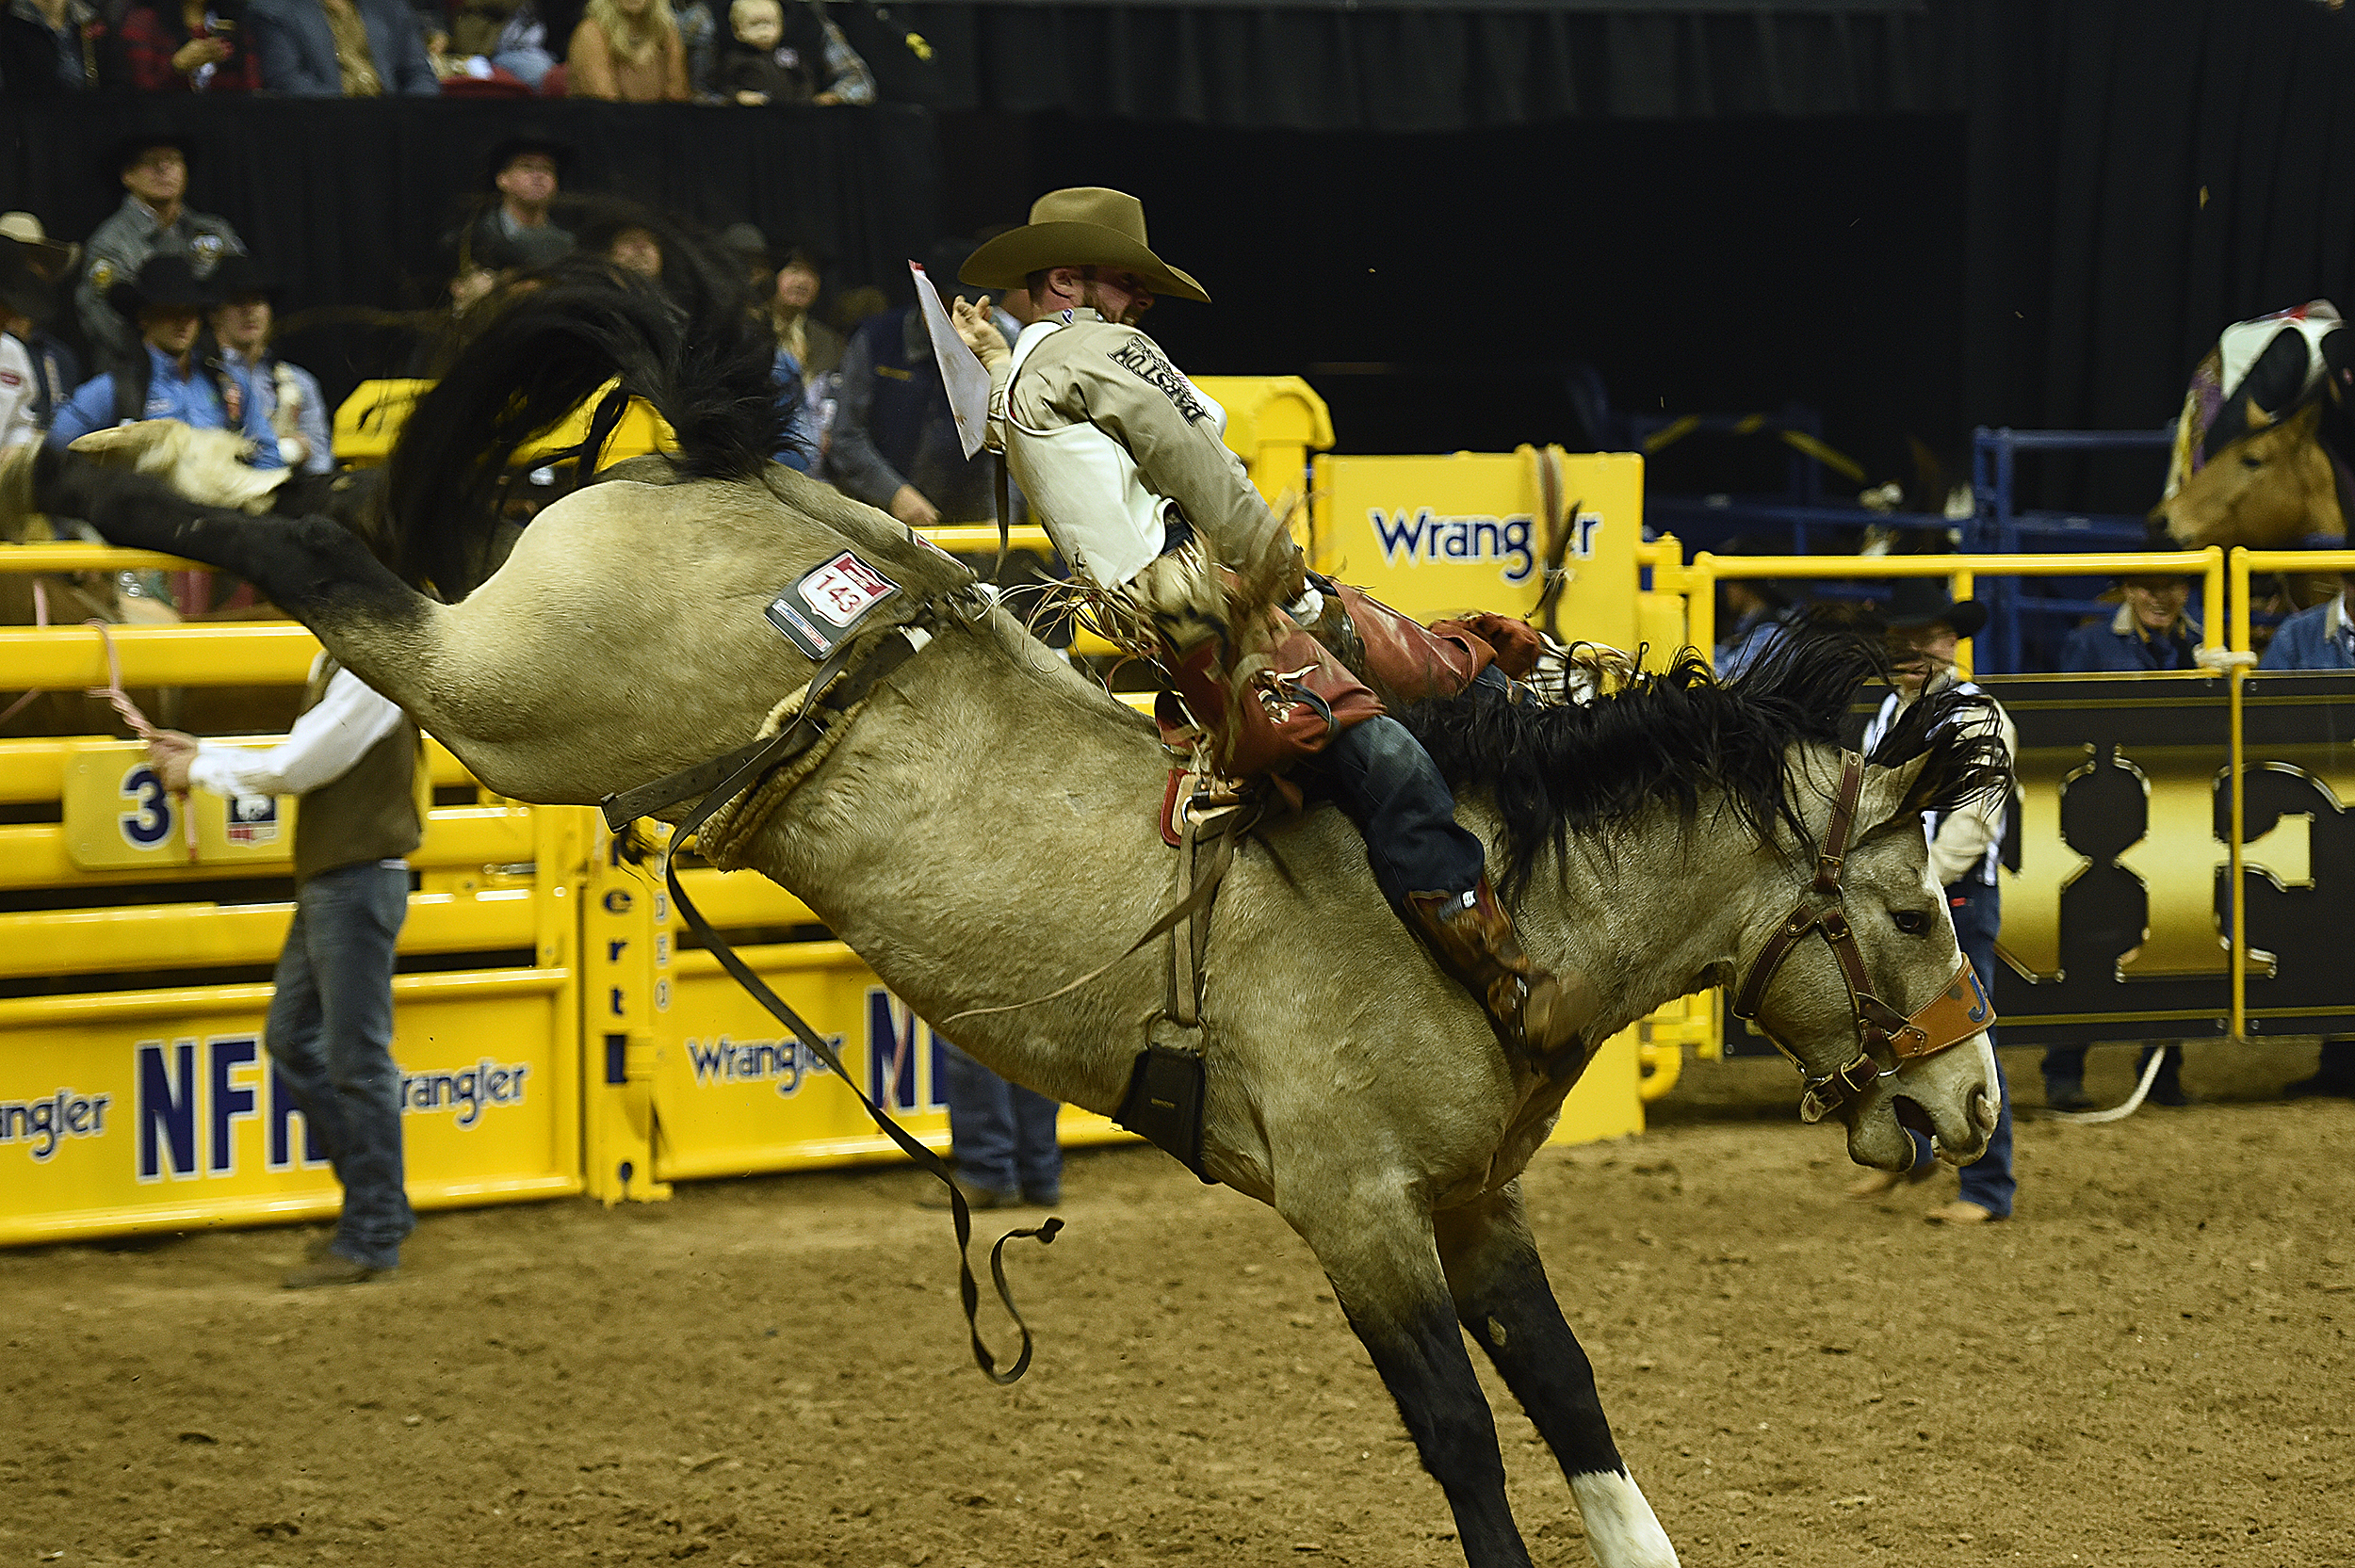 Mason Clements rides J Bar J Rodeo's Colorado Bulldog for 86.5 points Thursday night to finish second in the opening round of the National Finals Rodeo. (PHOTO BY ROBBY FREEMAN)